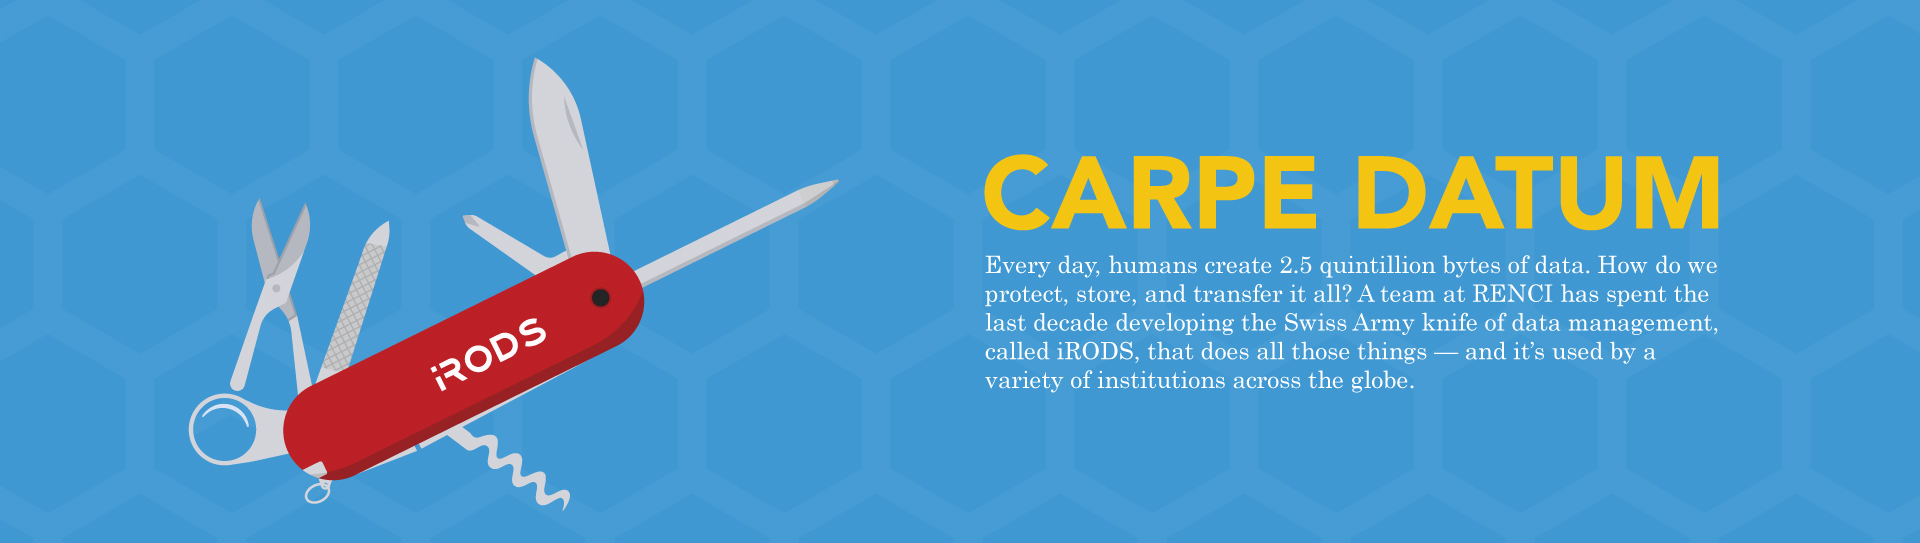 "Banner for the story ""Carpe Datum"" Every day, humans create 2.5 quintillion bytes of data. How do we protect, store, and transfer it all? A team at RENCI has spent the last decade developing the Swiss Army knife of data management, called iRODS, that does all those things — and it's used by avariety of institutions across the globe. Click to read more."